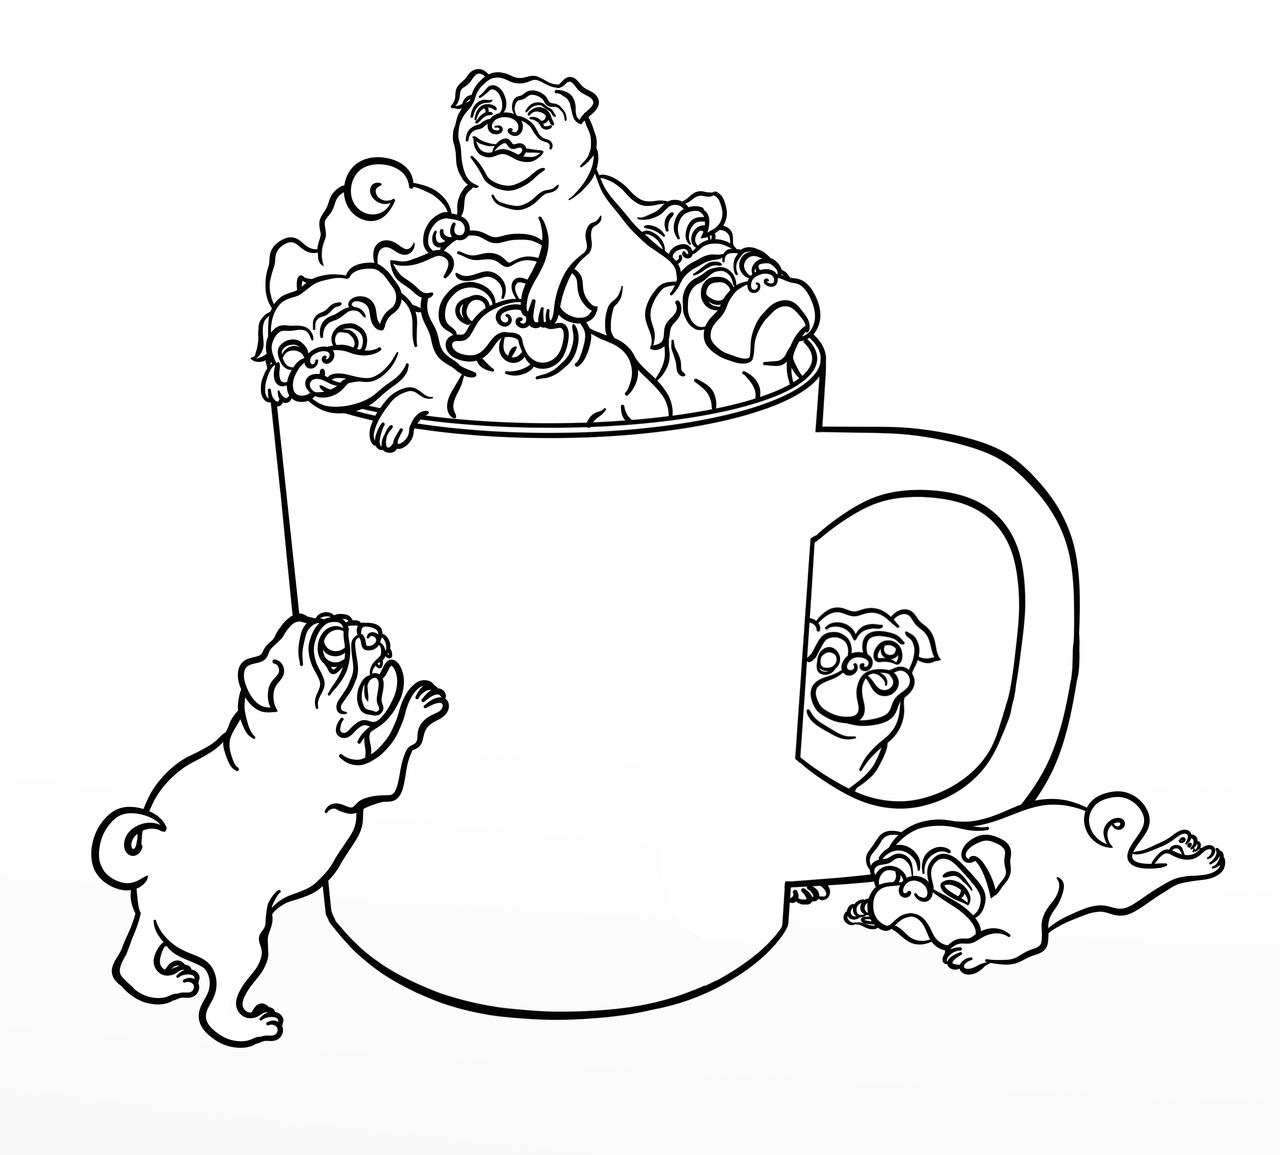 Pug Coloring Pages - Best Coloring Pages For Kids  Puppy coloring